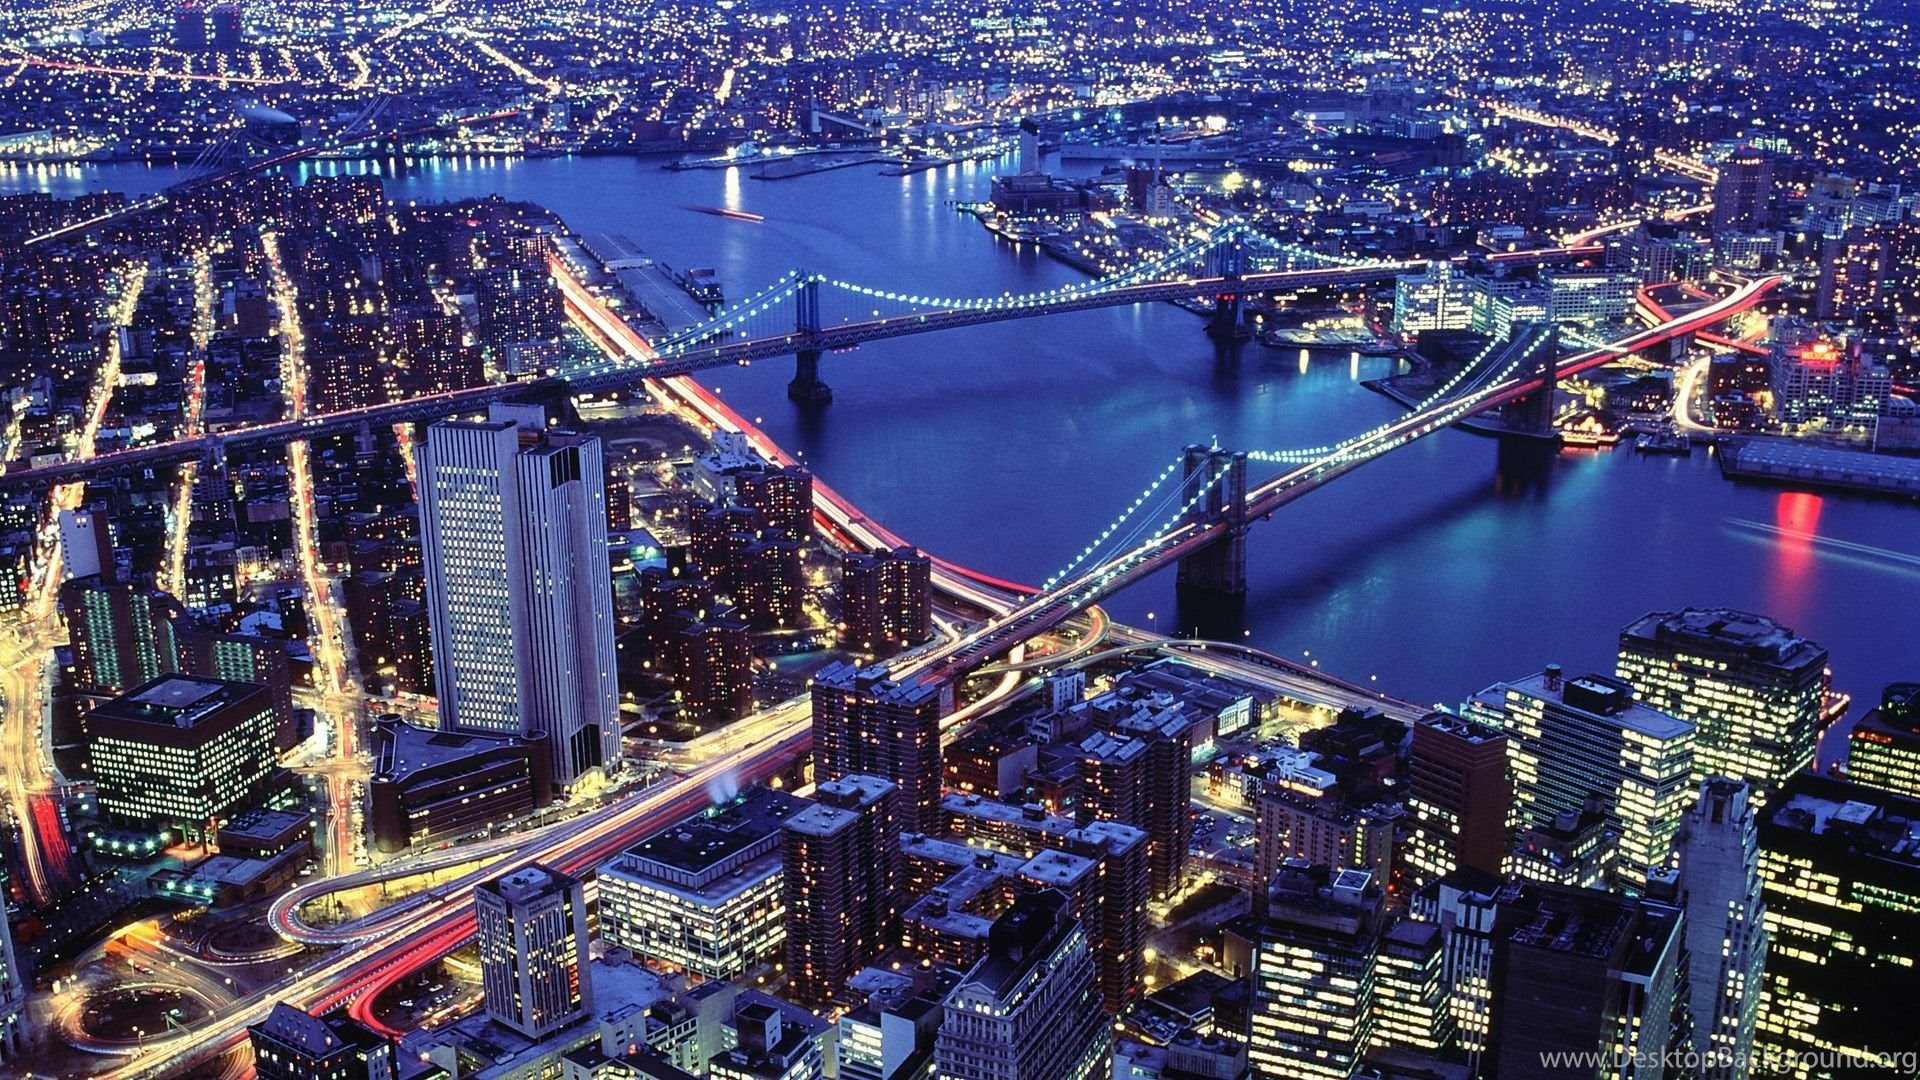 Aerial Buildings City New York Night View Hd Wallpapers Desktop Background